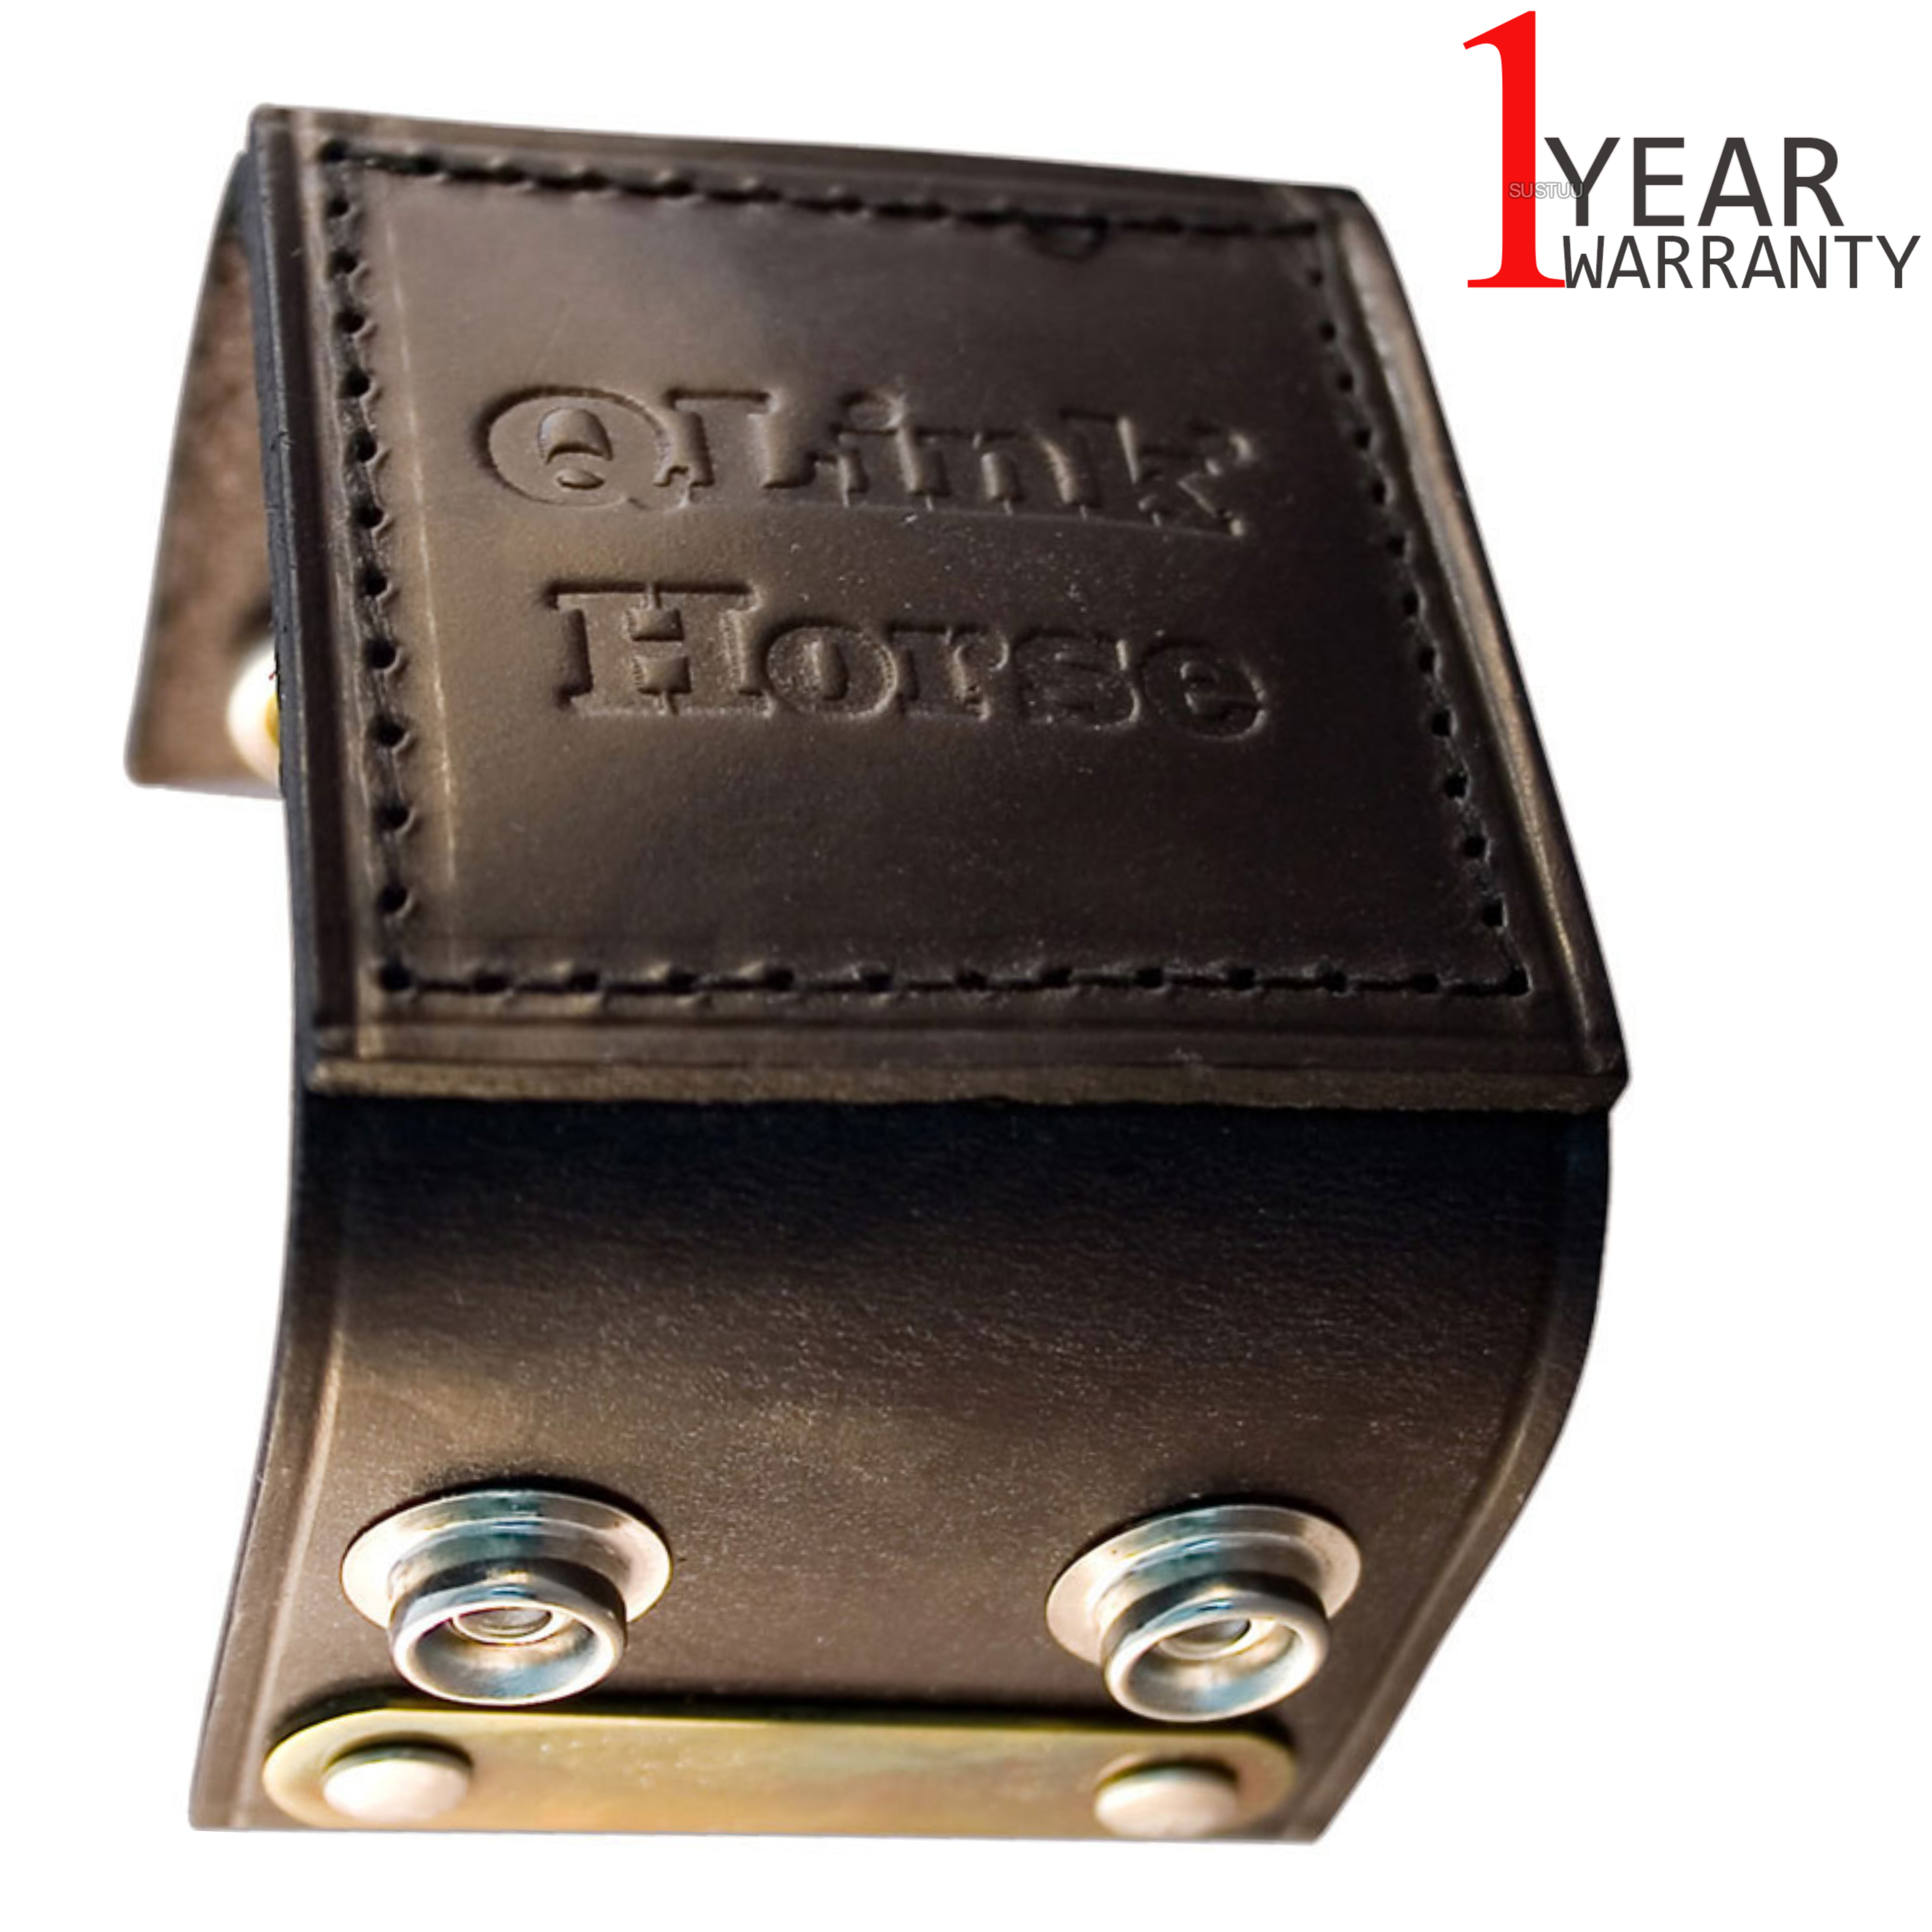 Q-Link SRT-3 Cuff for equines & Animal | Genuine Leather | Energy System | Robust/Lightweight